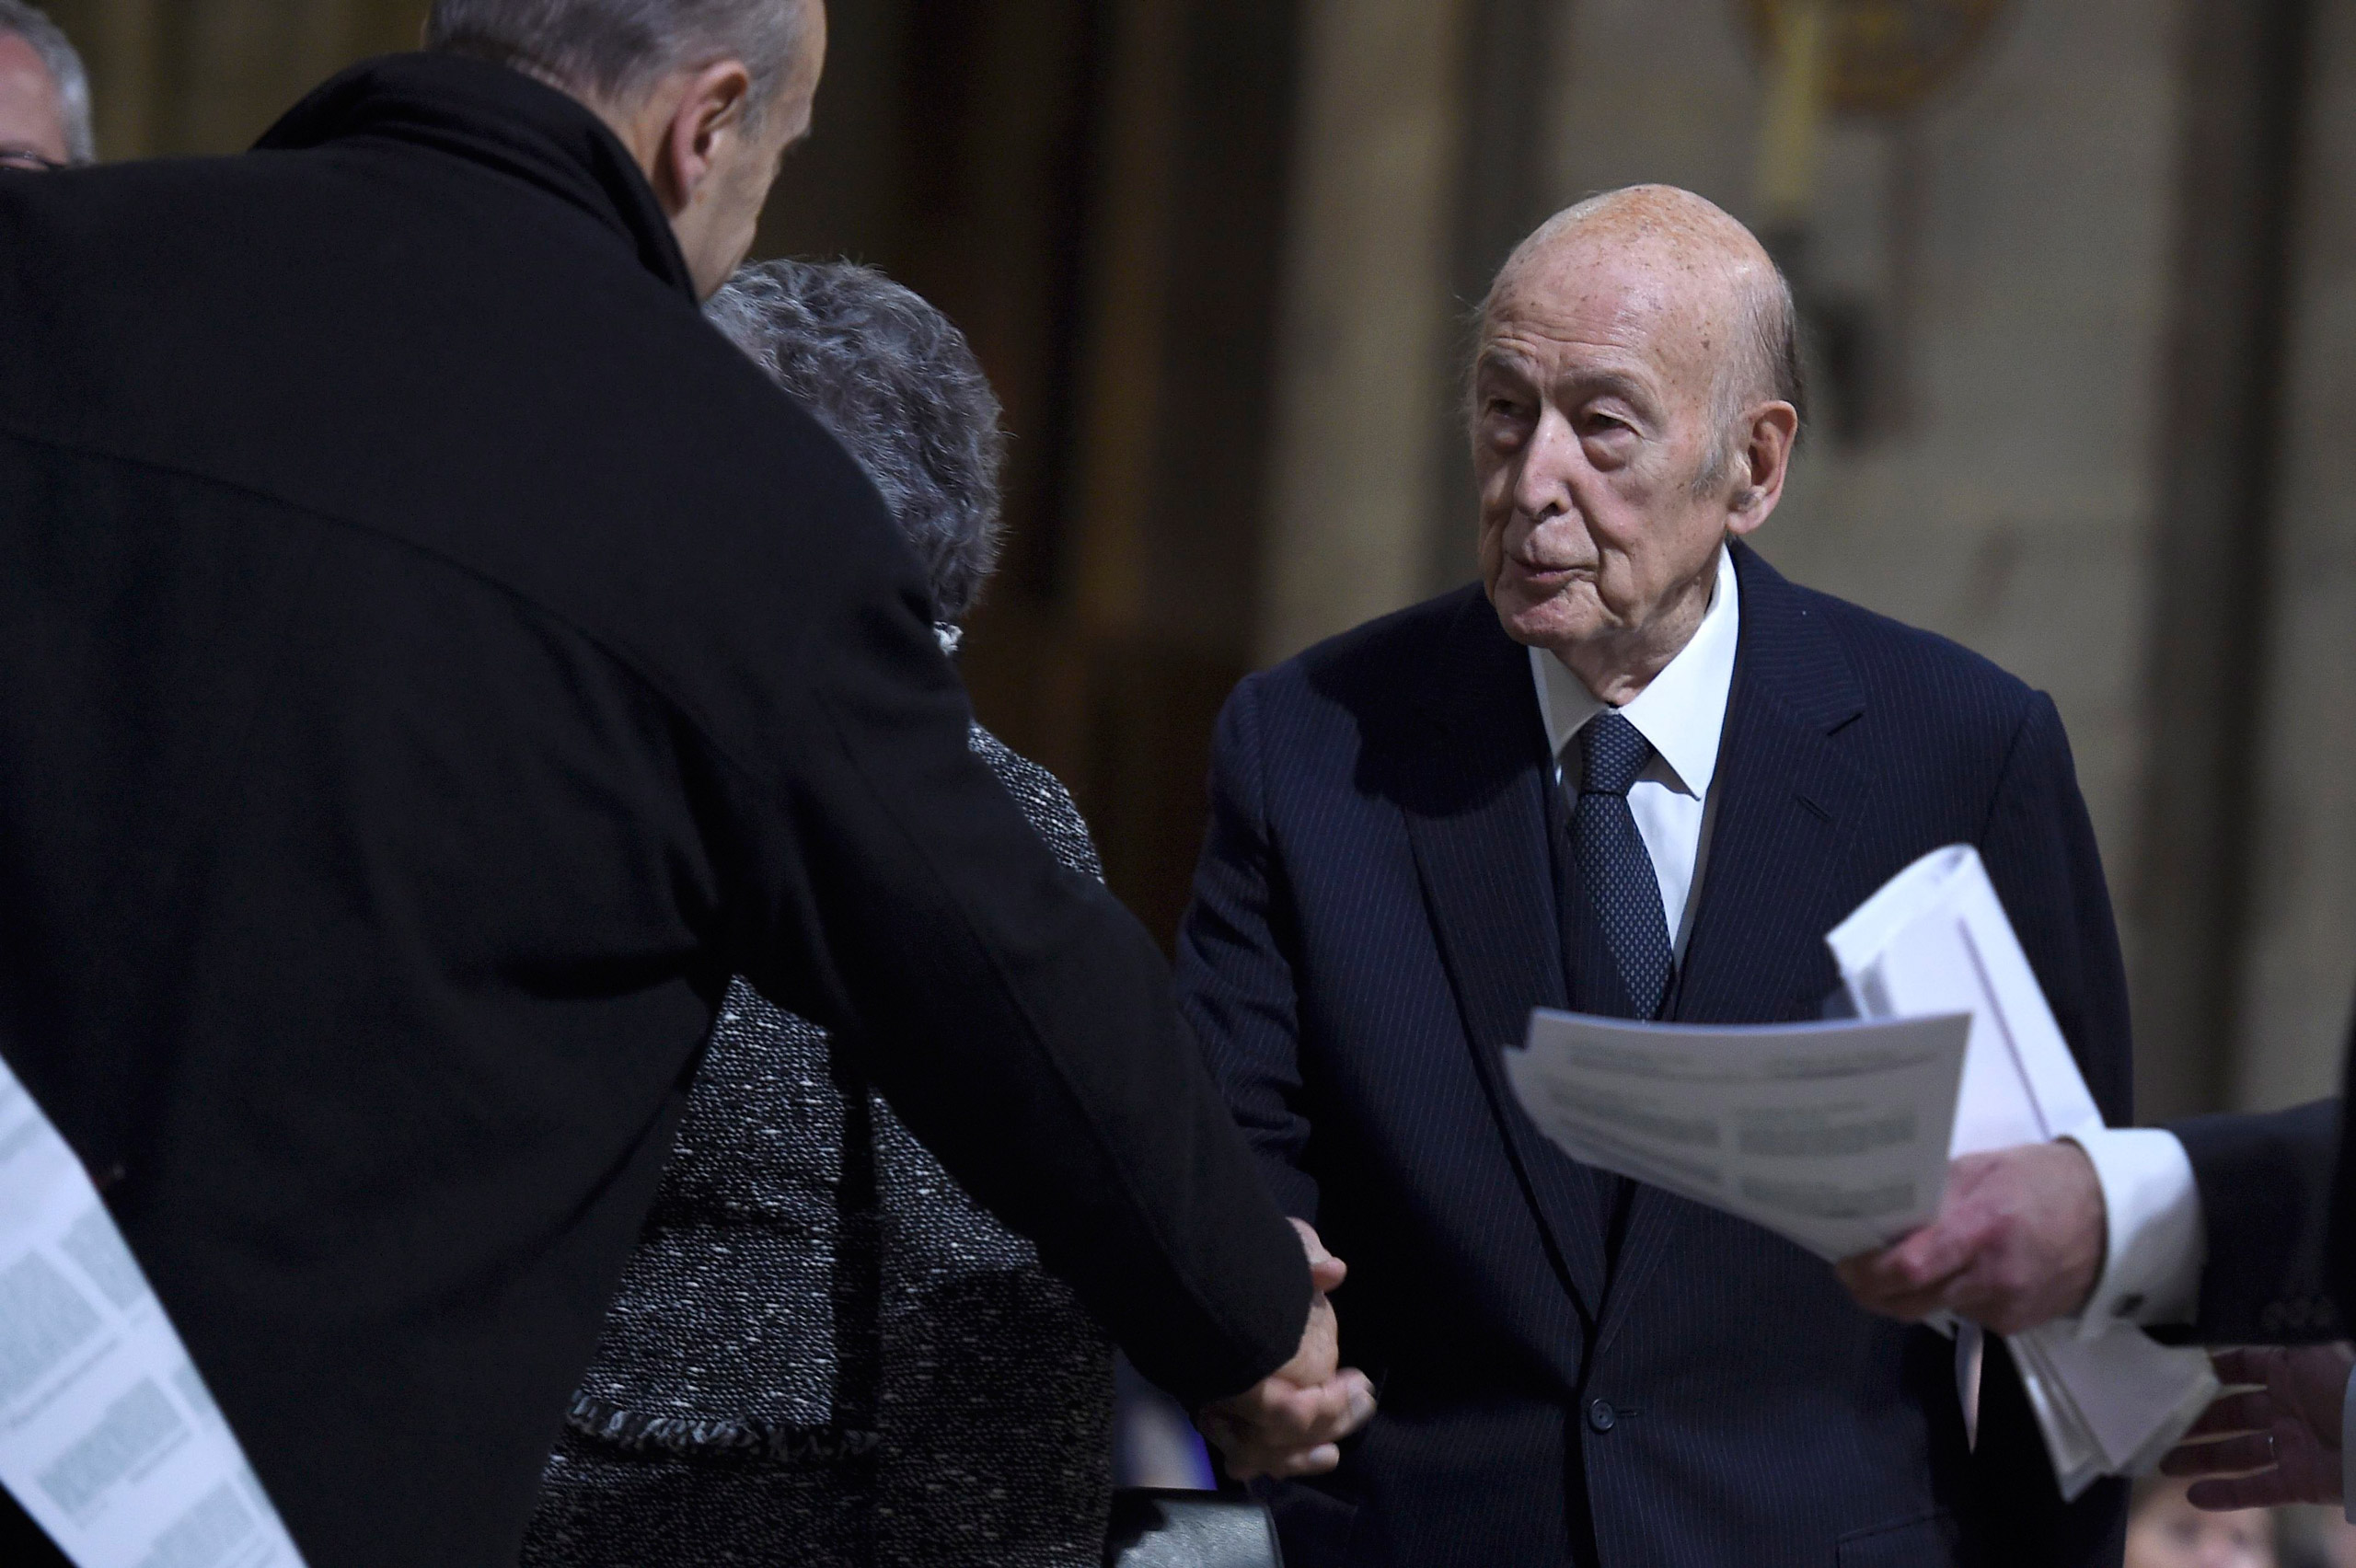 Former French President Valery Giscard d'Estaing arrives to attend mass at the Notre Dame Cathedral in Paris on Nov. 15, 2015.